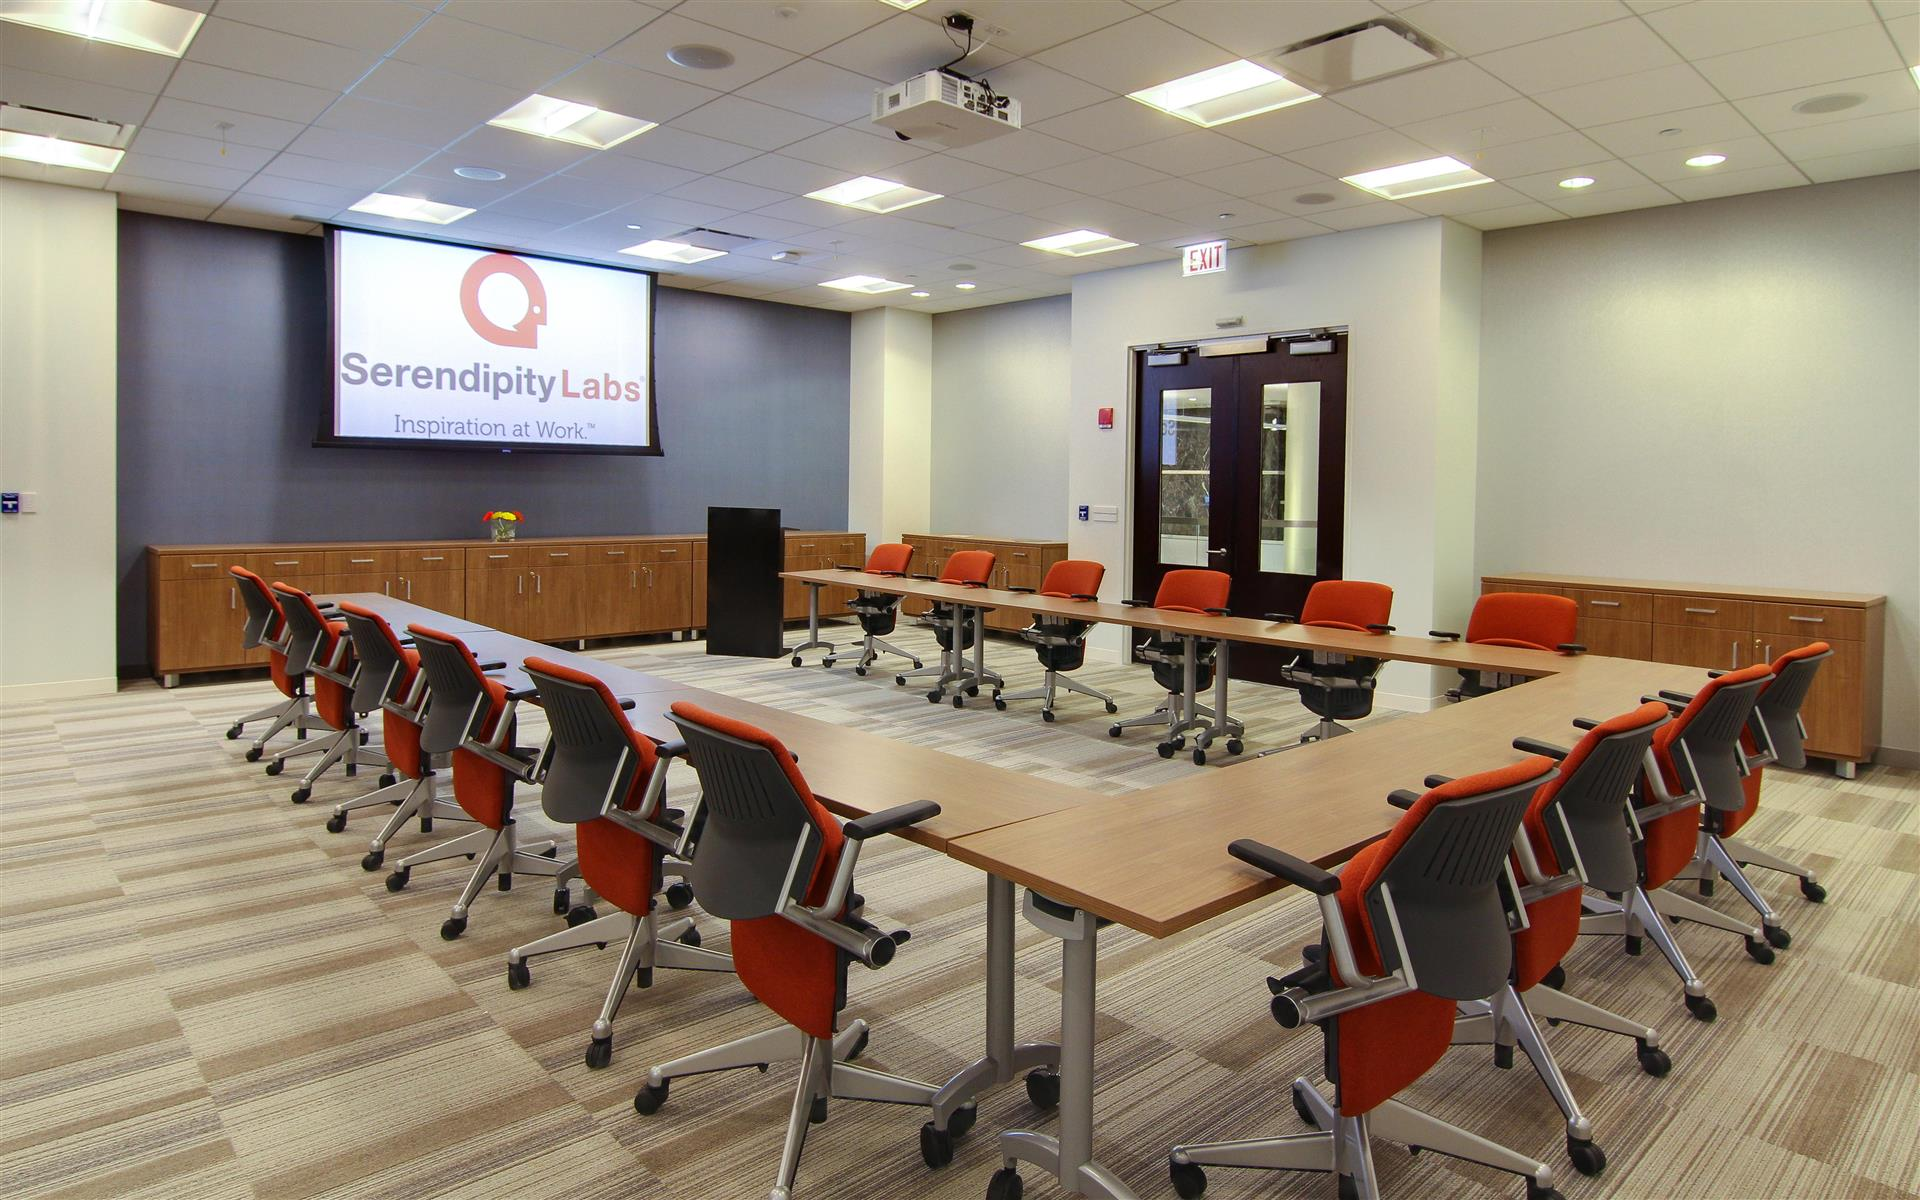 Serendipity Labs Chicago Chicago Loop - Conference space in Loop 1/2 day at $549